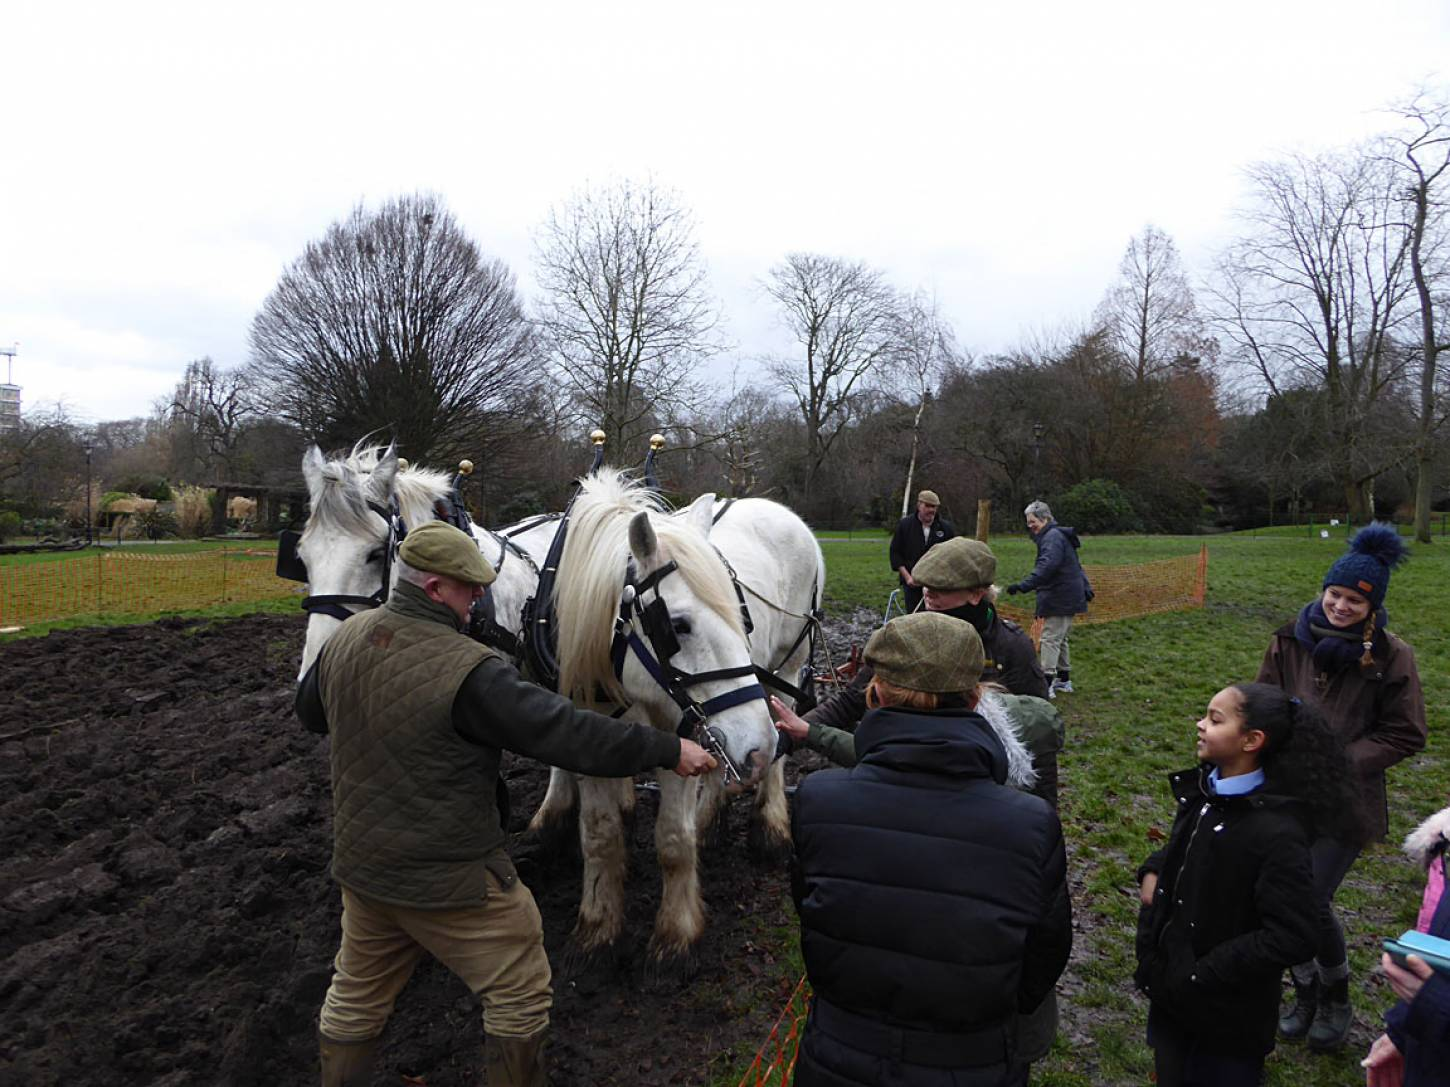 Shire horses, Heath and Nobby with ploughman Tom Nixon from <a href='http://www.operationcentaur.com/' target='_blank'>Operation Centaur</a> come to plough the <a href='https://twitter.com/ruskinparkse5?lang=en' target='_blank'>Ruskin Park</a> wheat patch - 3:01pm&nbsp;9<sup>th</sup>&nbsp;Feb.&nbsp;'18  <a href='http://maps.google.com/?t=h&q=51.464825,-0.092586&z=18&output=embed' target=_blank><img src='http://www.brockwell-bake.org.uk/img/marker.png' style='border:none;vertical-align:top' height=16px></a>